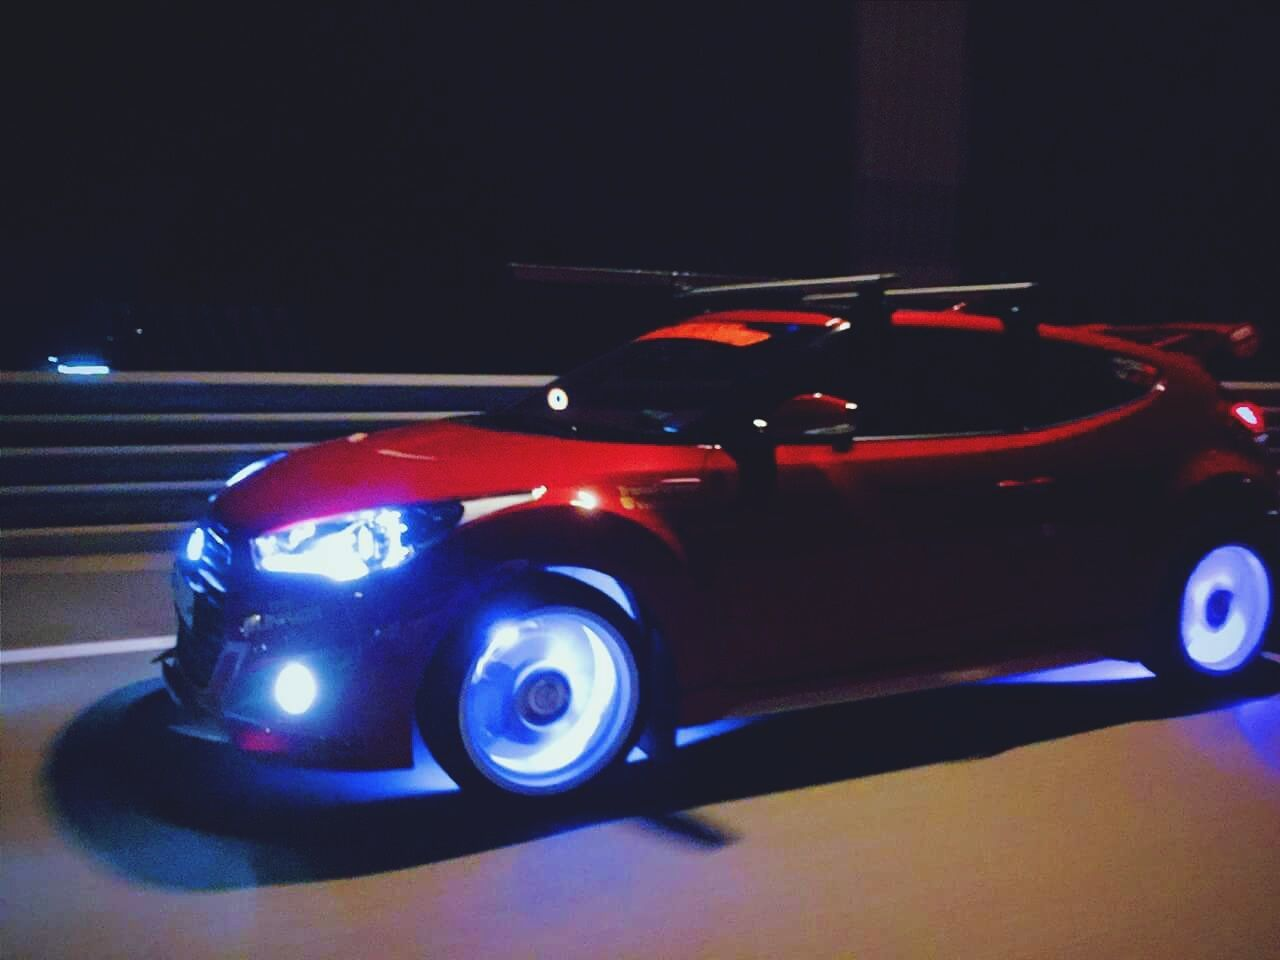 The Drive Red Auto Racing Illuminated No People Racecar Sports Race Night Outdoors Motorsport Collector's Car Velosterturbo Veloster Velocity Velosternation